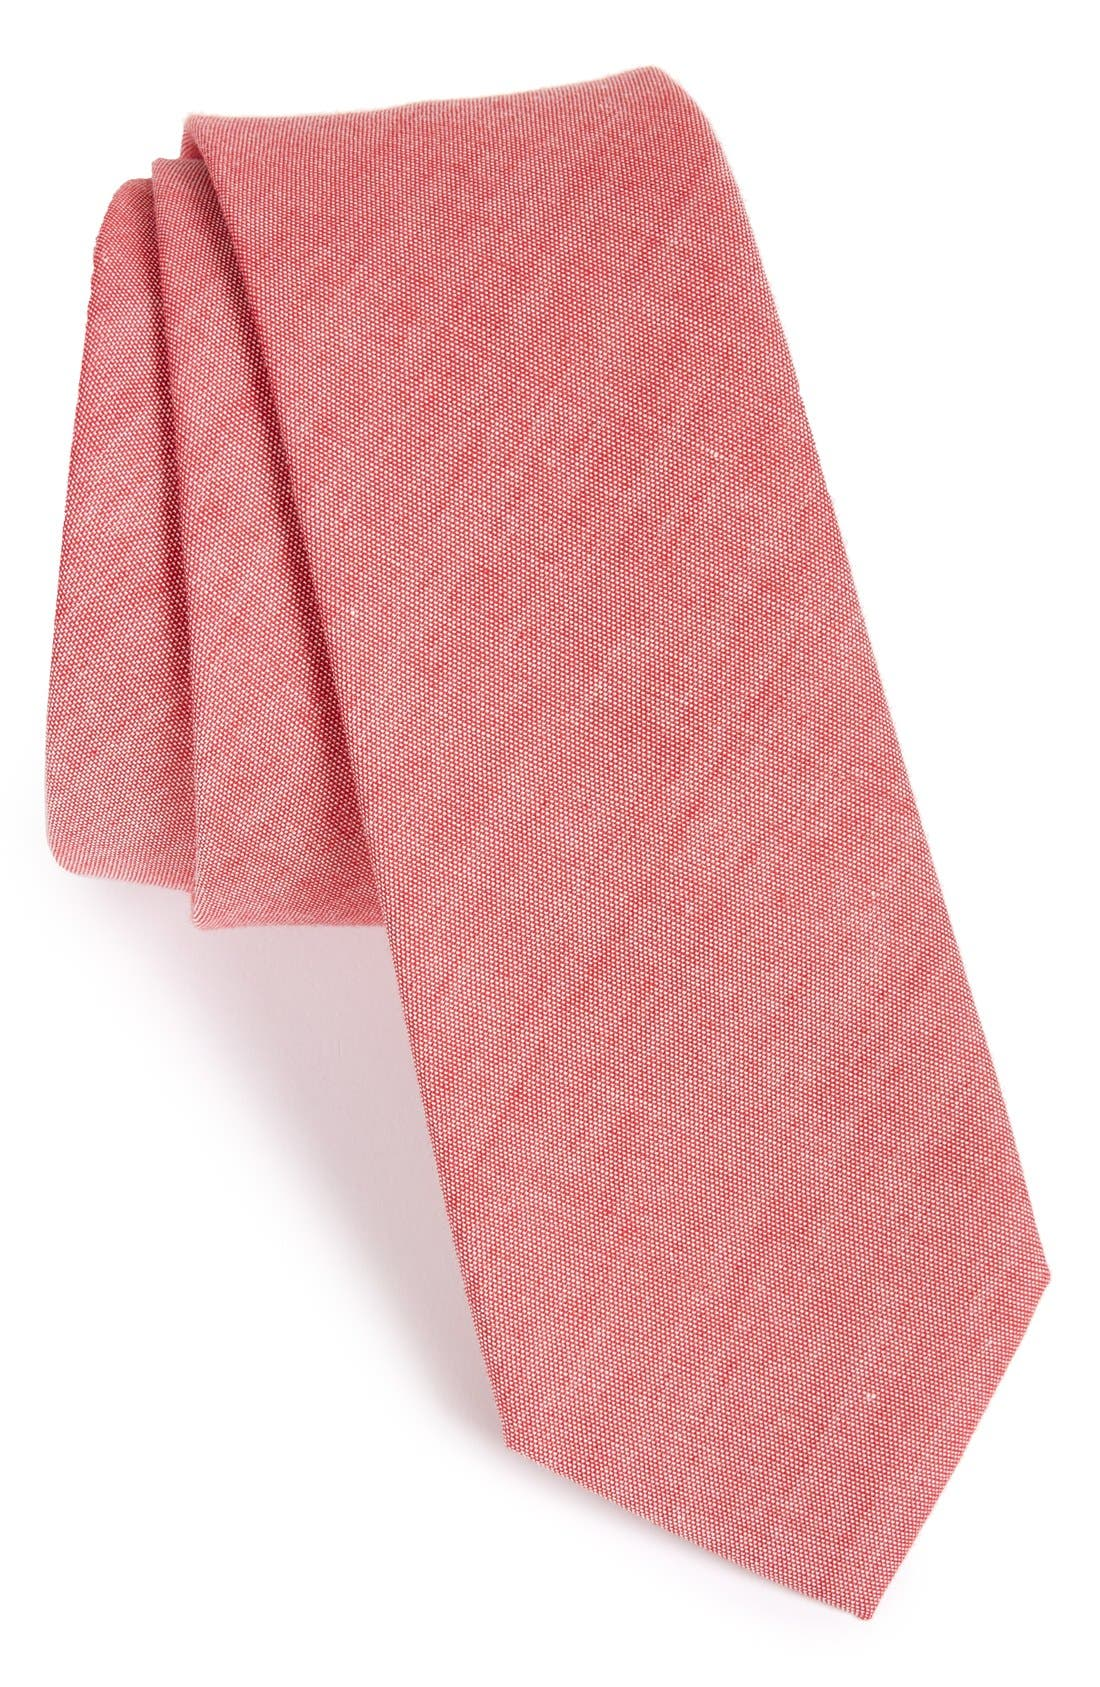 Main Image - The Tie Bar Cotton Tie